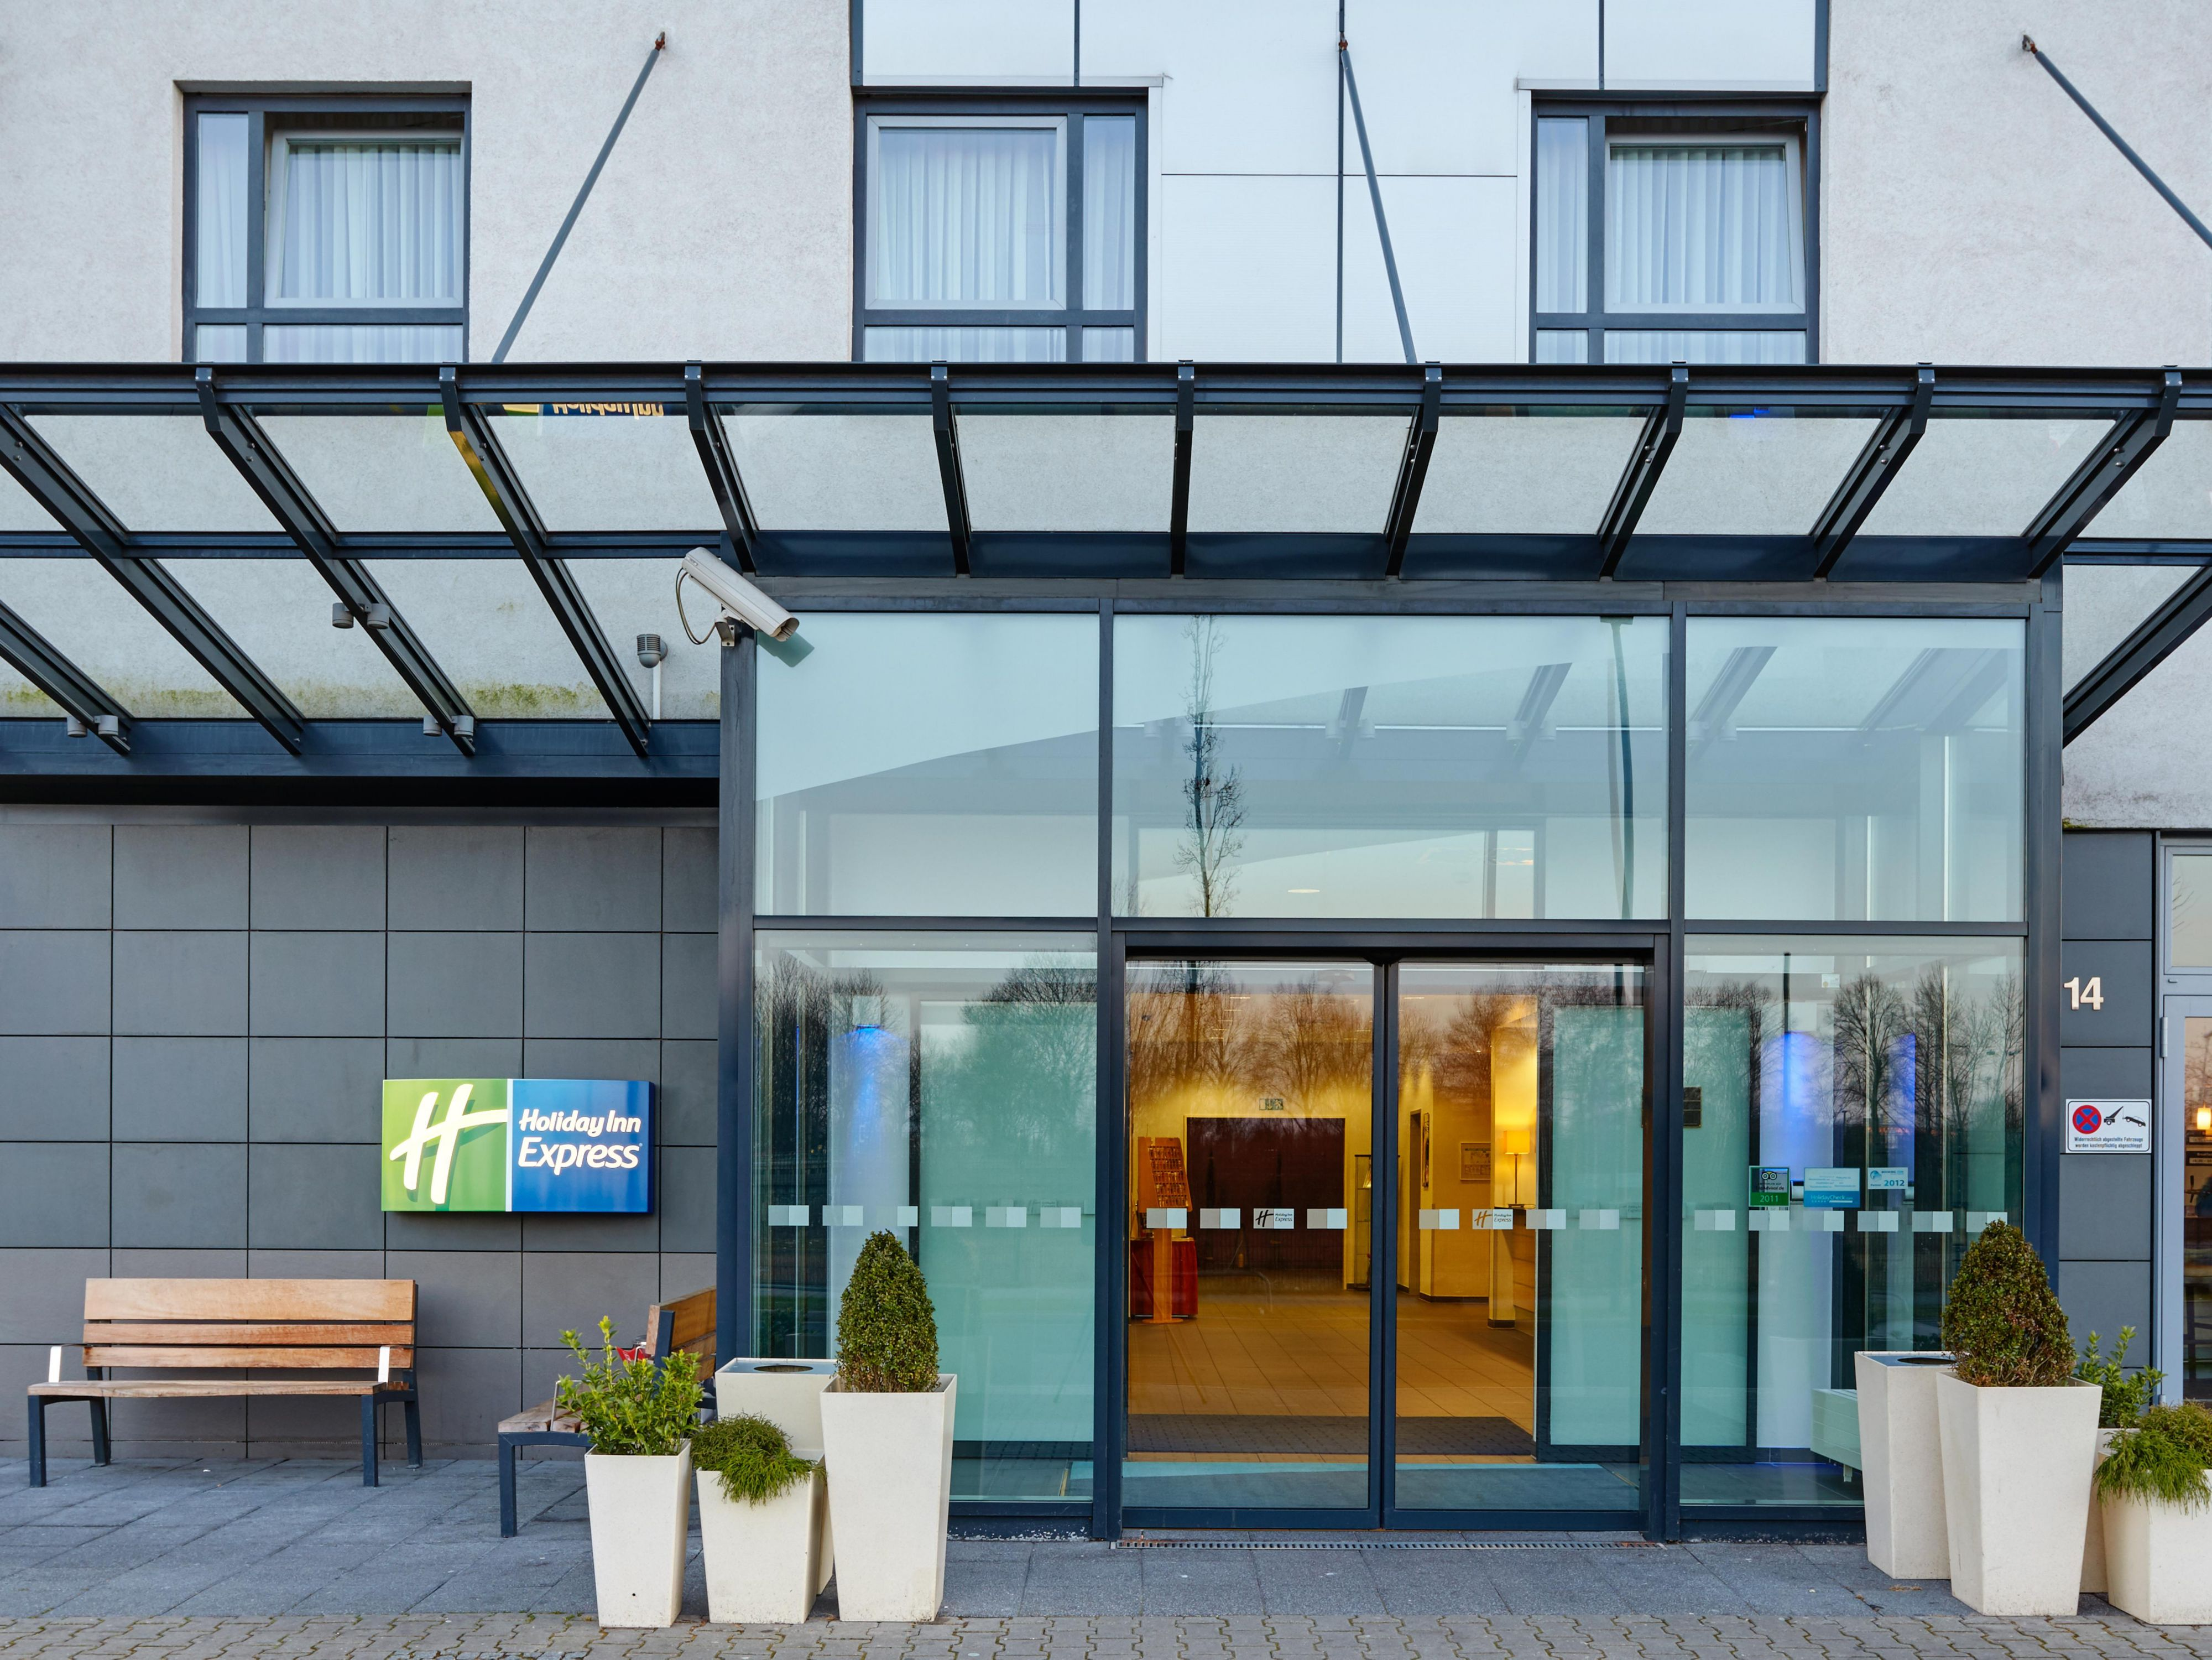 Welcome to Holiday Inn Express Dusseldorf